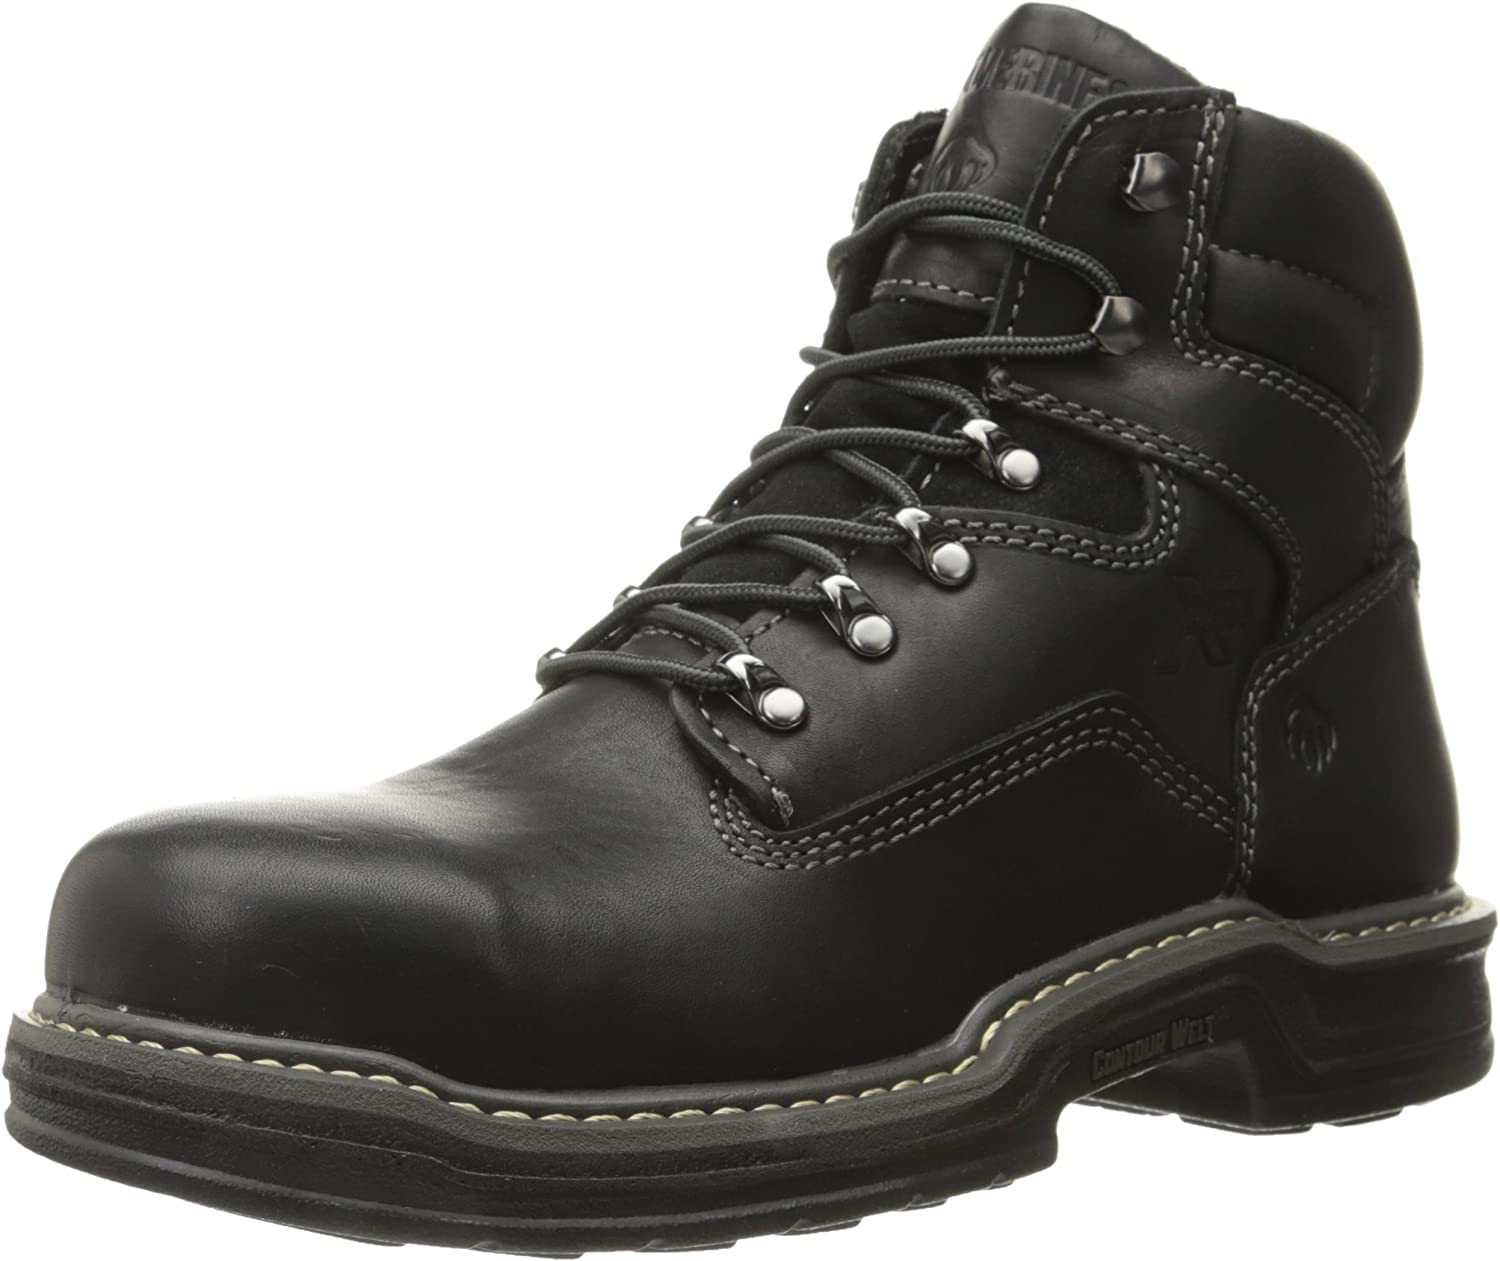 Inch Contour Welt S/T EH Work Boot